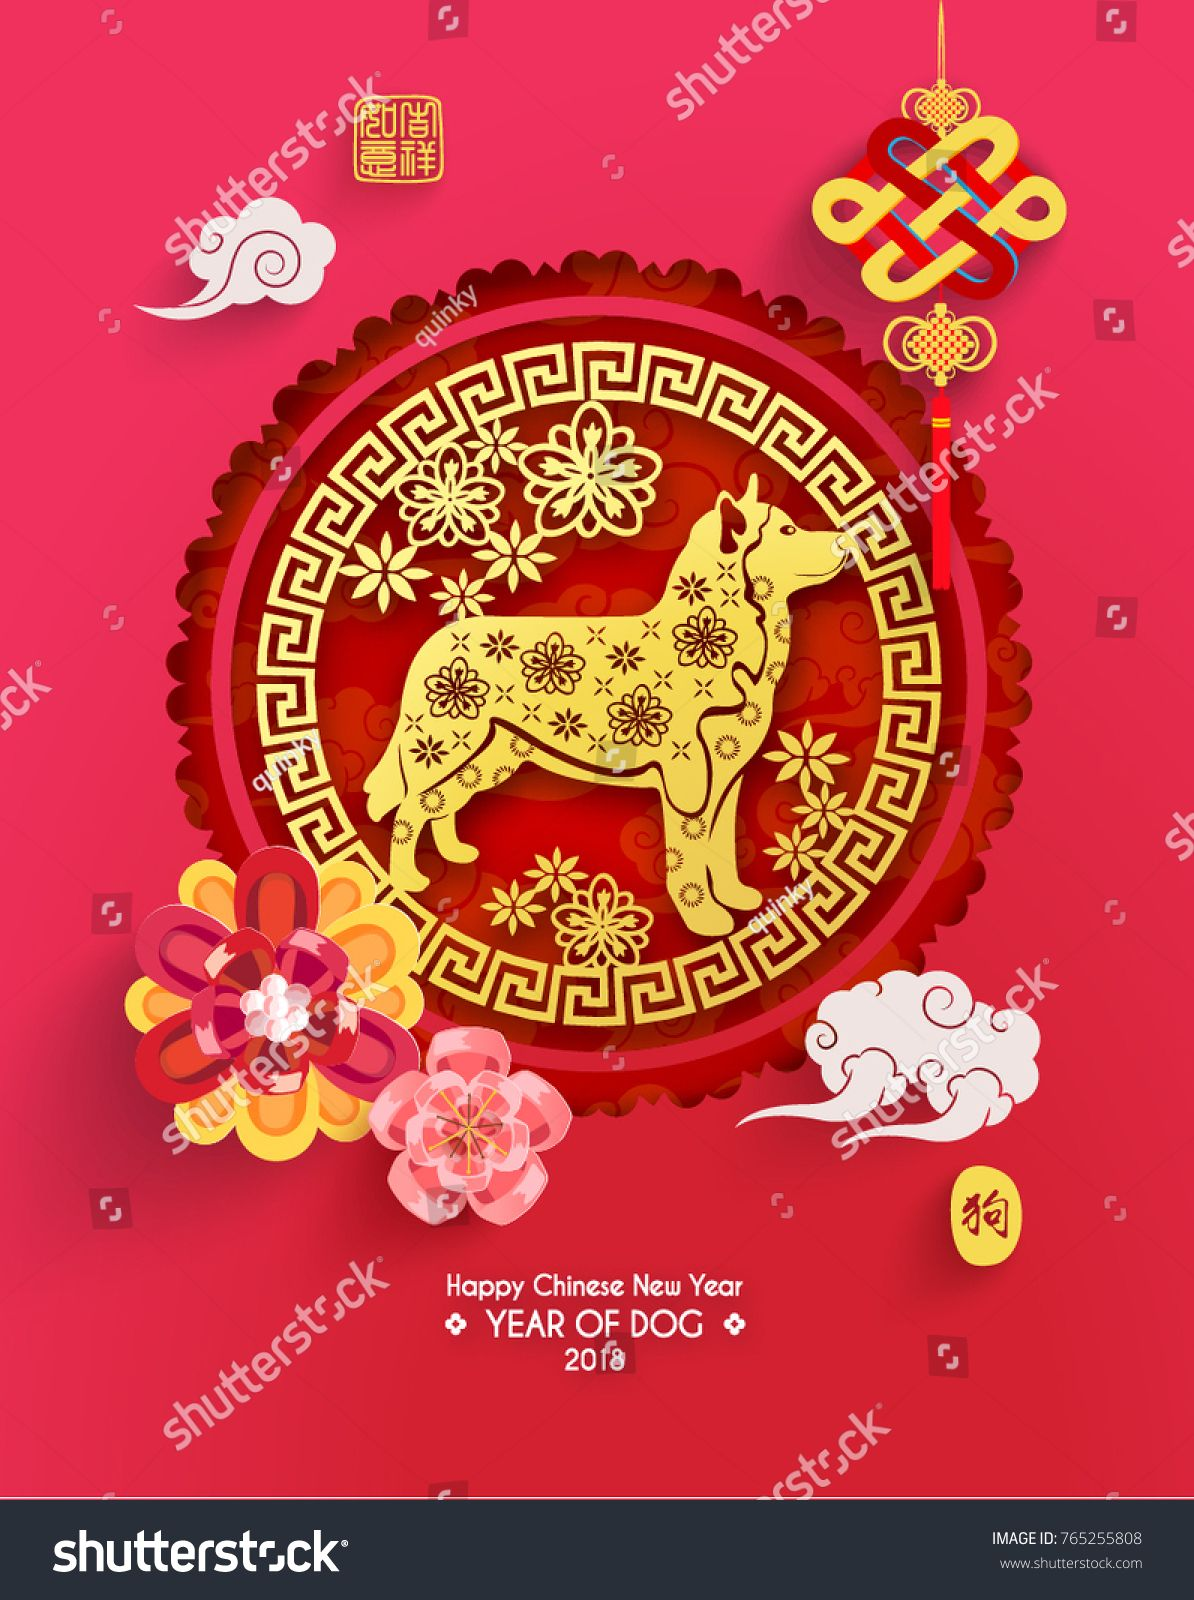 Happy Chinese New Year 2018 Year Of Dog Vector Design Chinese